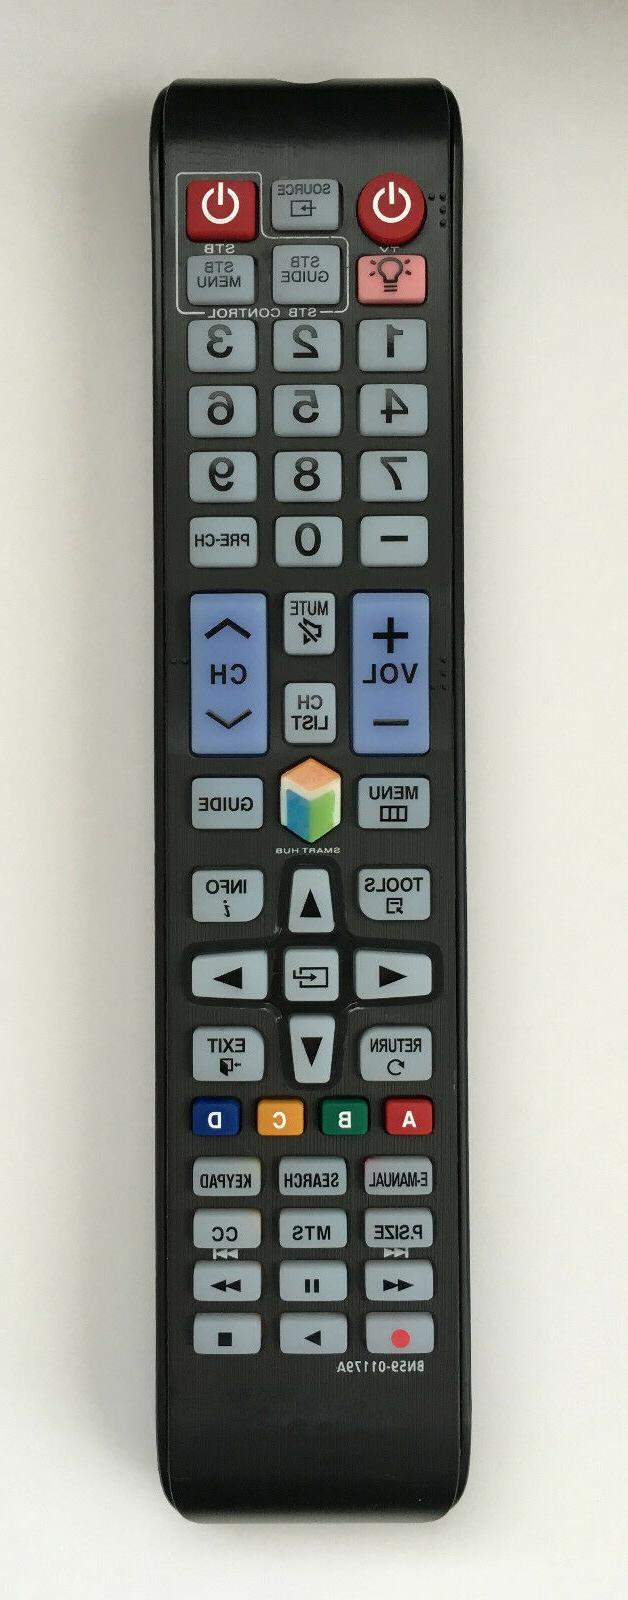 new remote control bn59 01179a for samsung